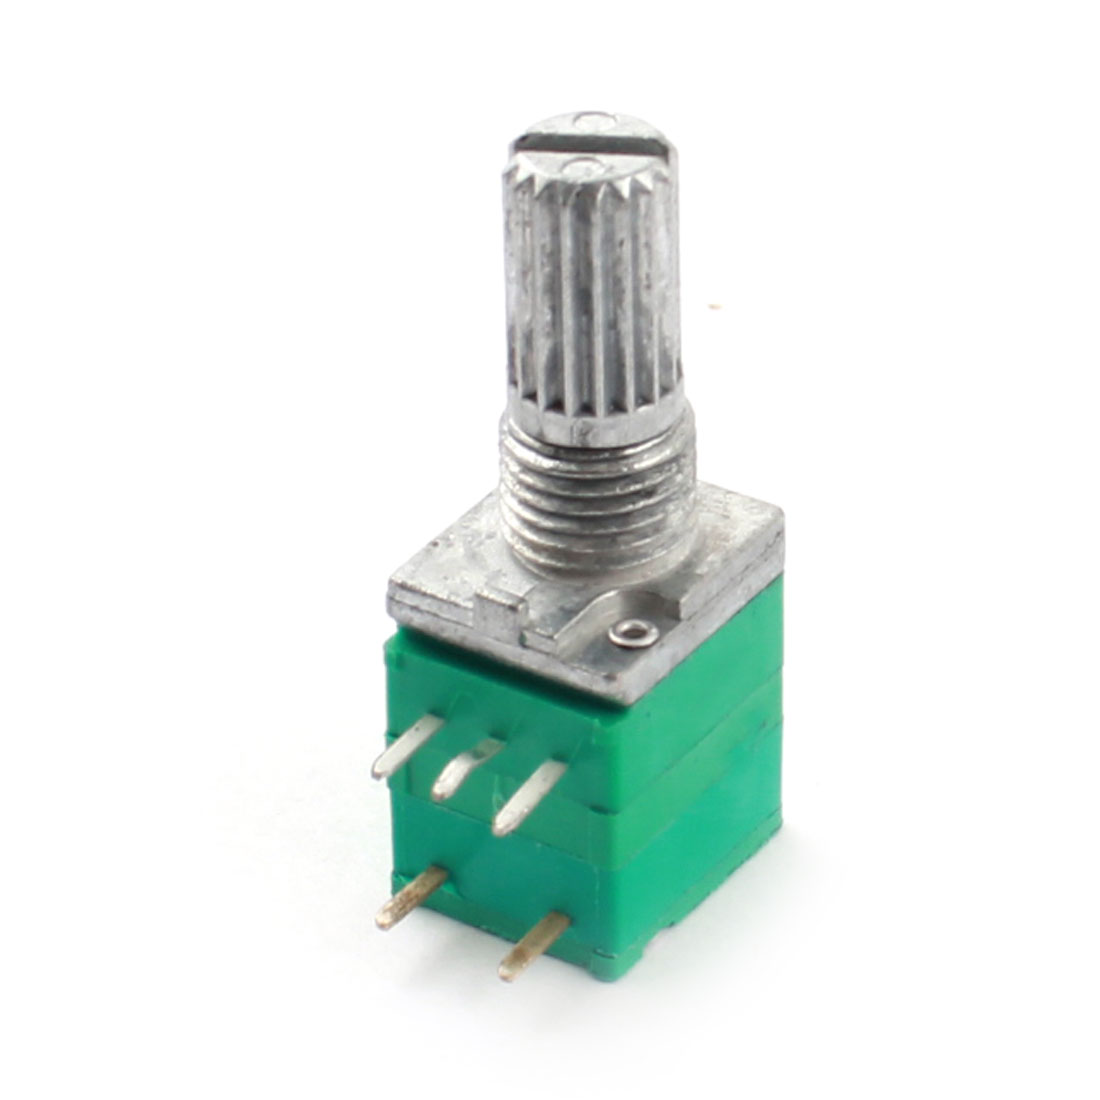 50K Ohm 7mm Dia Thread 6mm Knurled Shaft 5-Pin Through Hole Mount Linear Rotary Adjustable Taper Potentiometer Switch